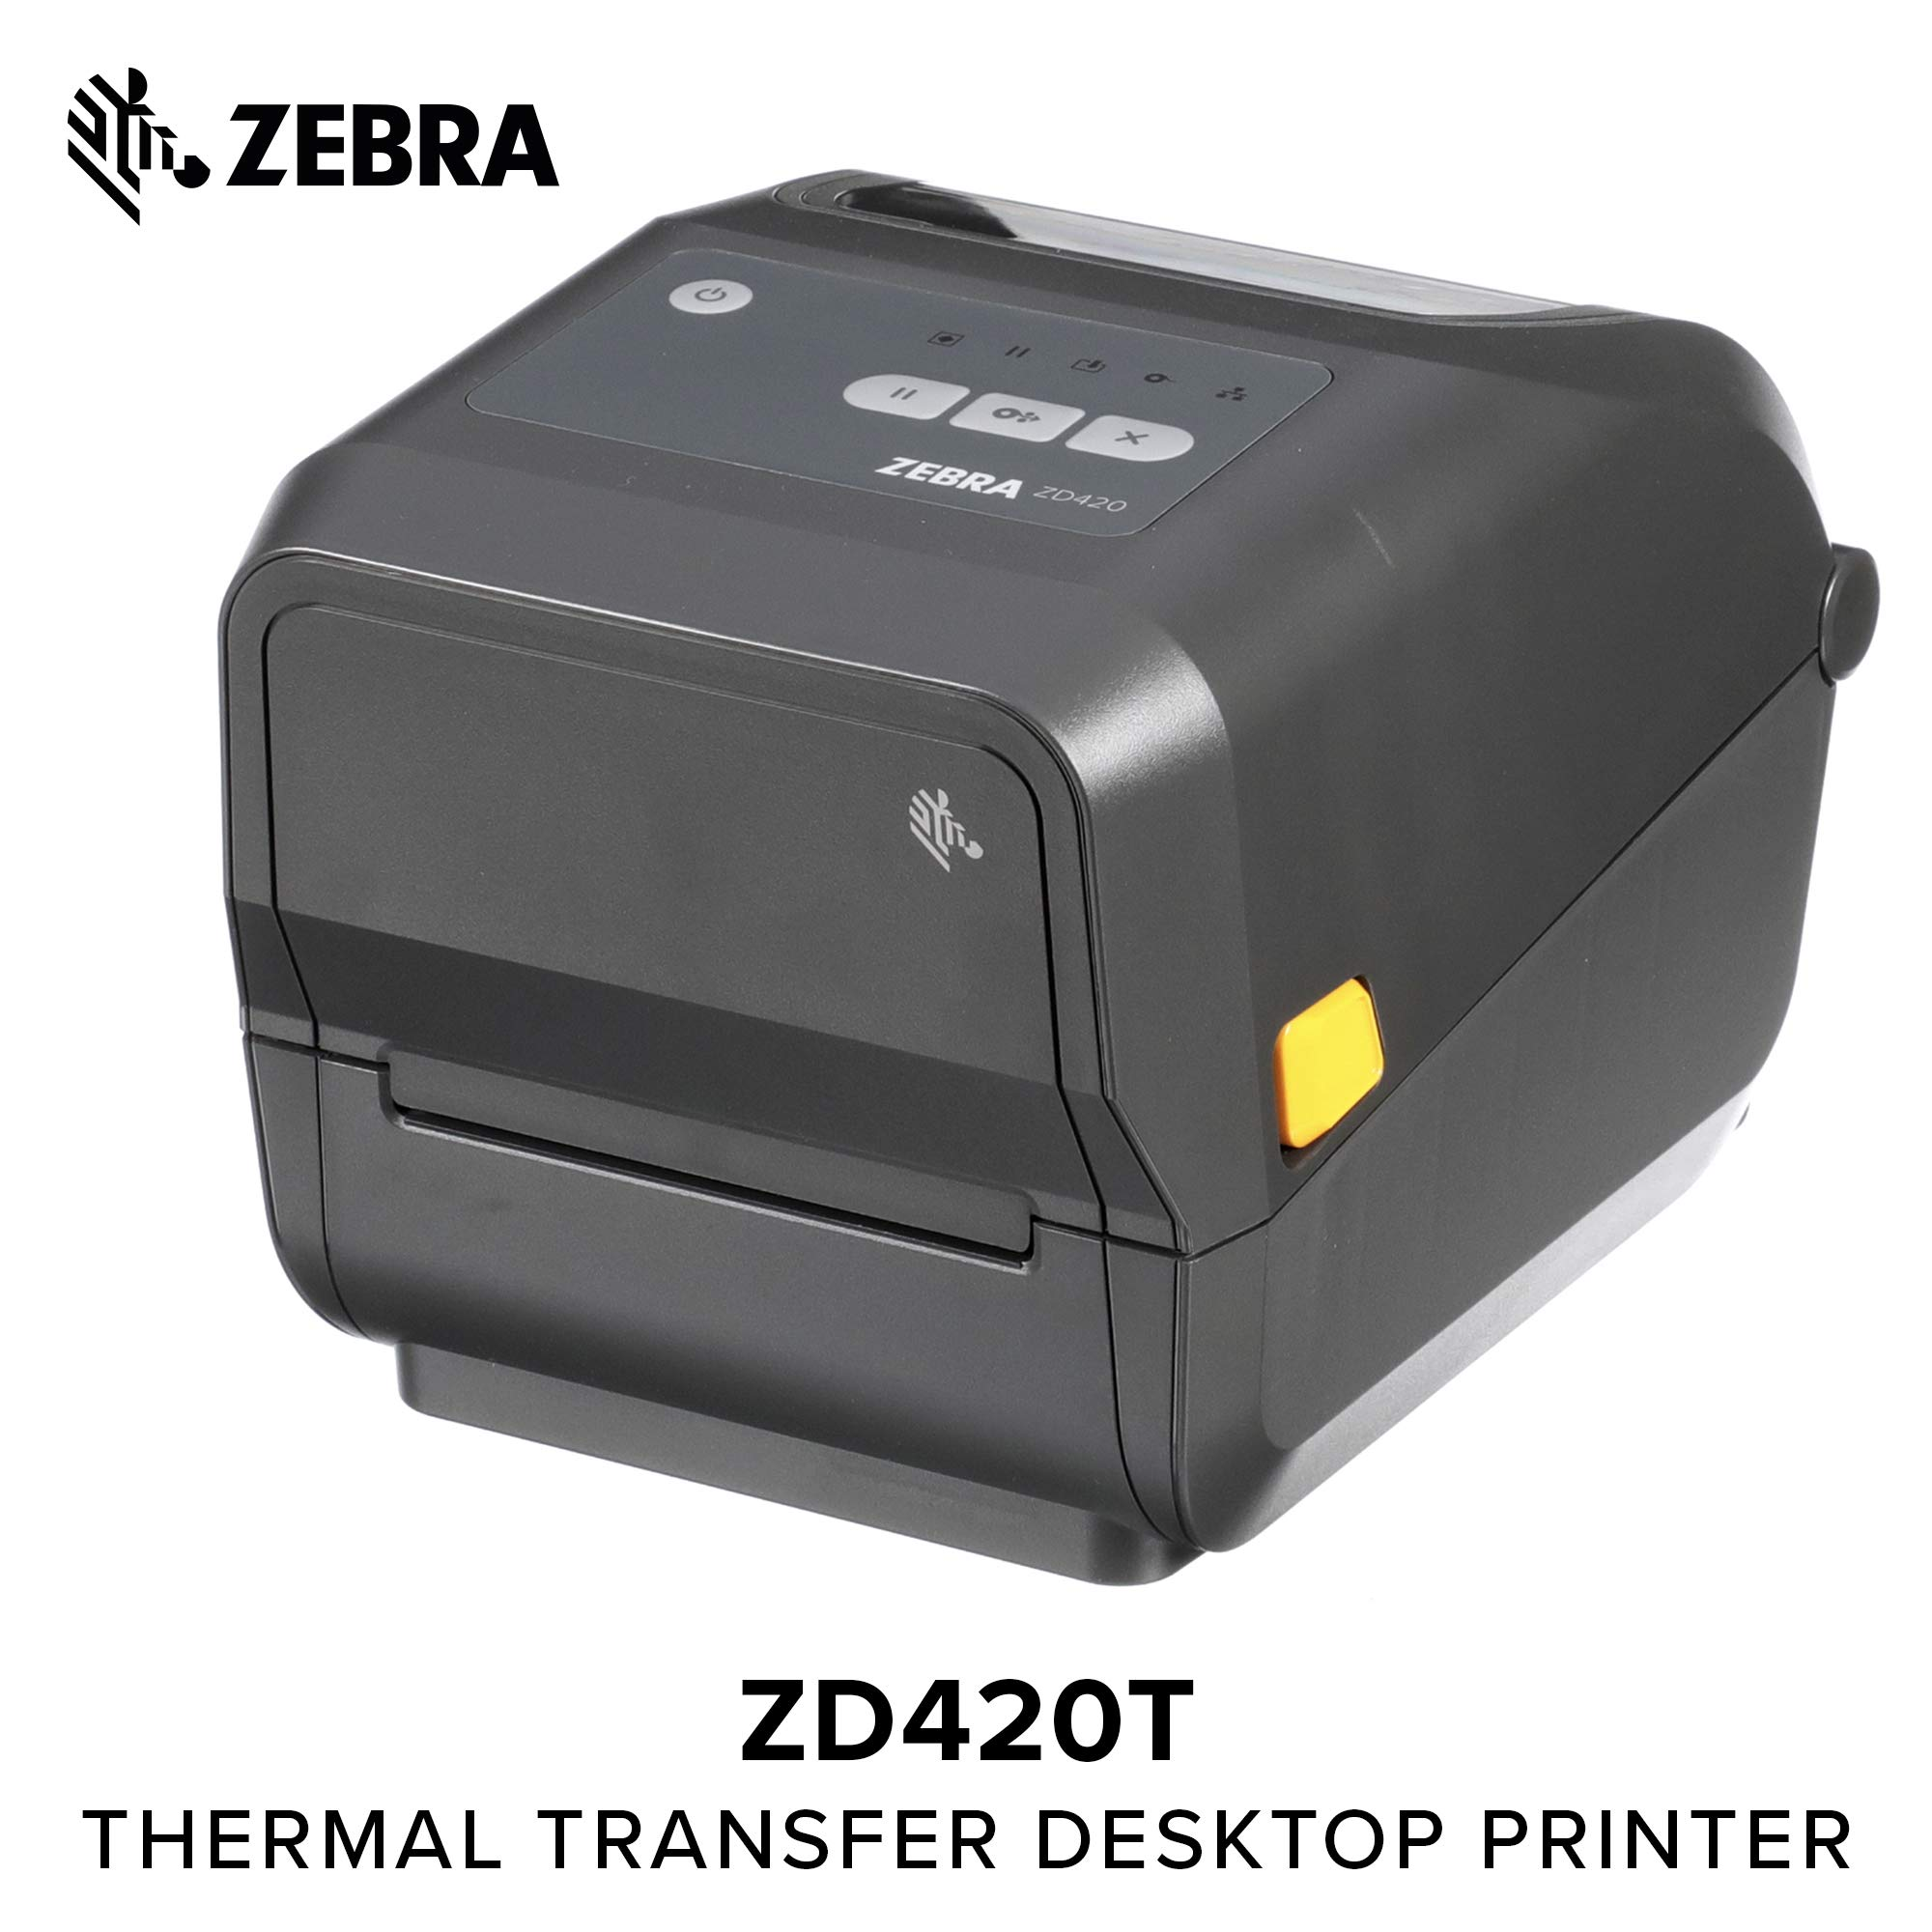 Zebra - ZD420t Thermal Transfer Desktop Printer for Labels and Barcodes - Print Width 4 in - 203 dpi - Interface: WiFi, Bluetooth, USB - ZD42042-T01W01EZ